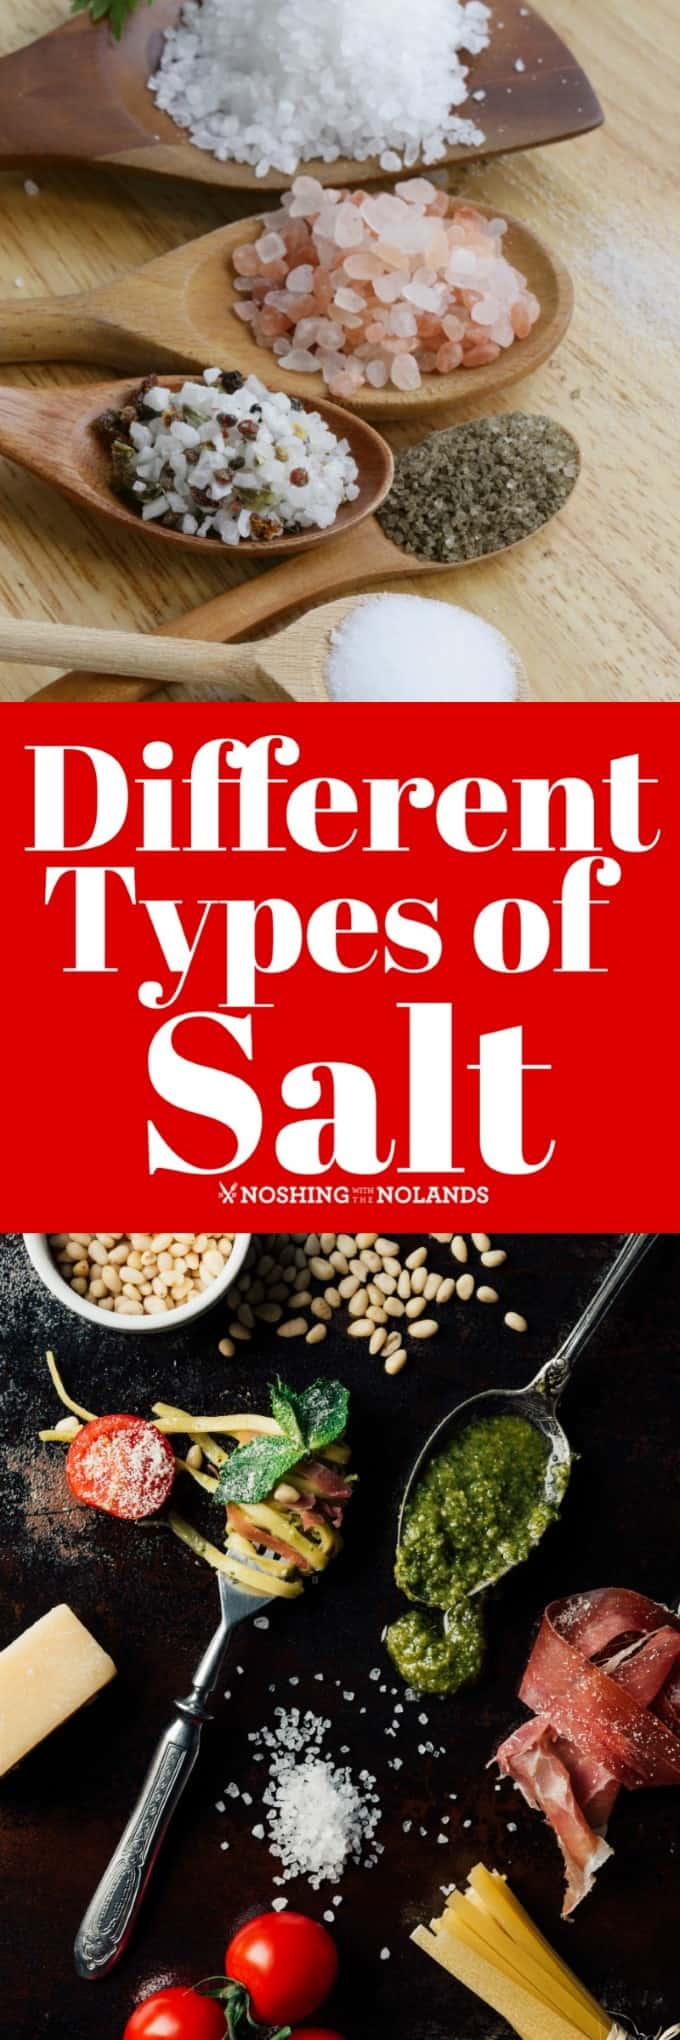 Different Types of Salts have different salt contents and different uses!! Check out what is right for you!! #salt #salt basics